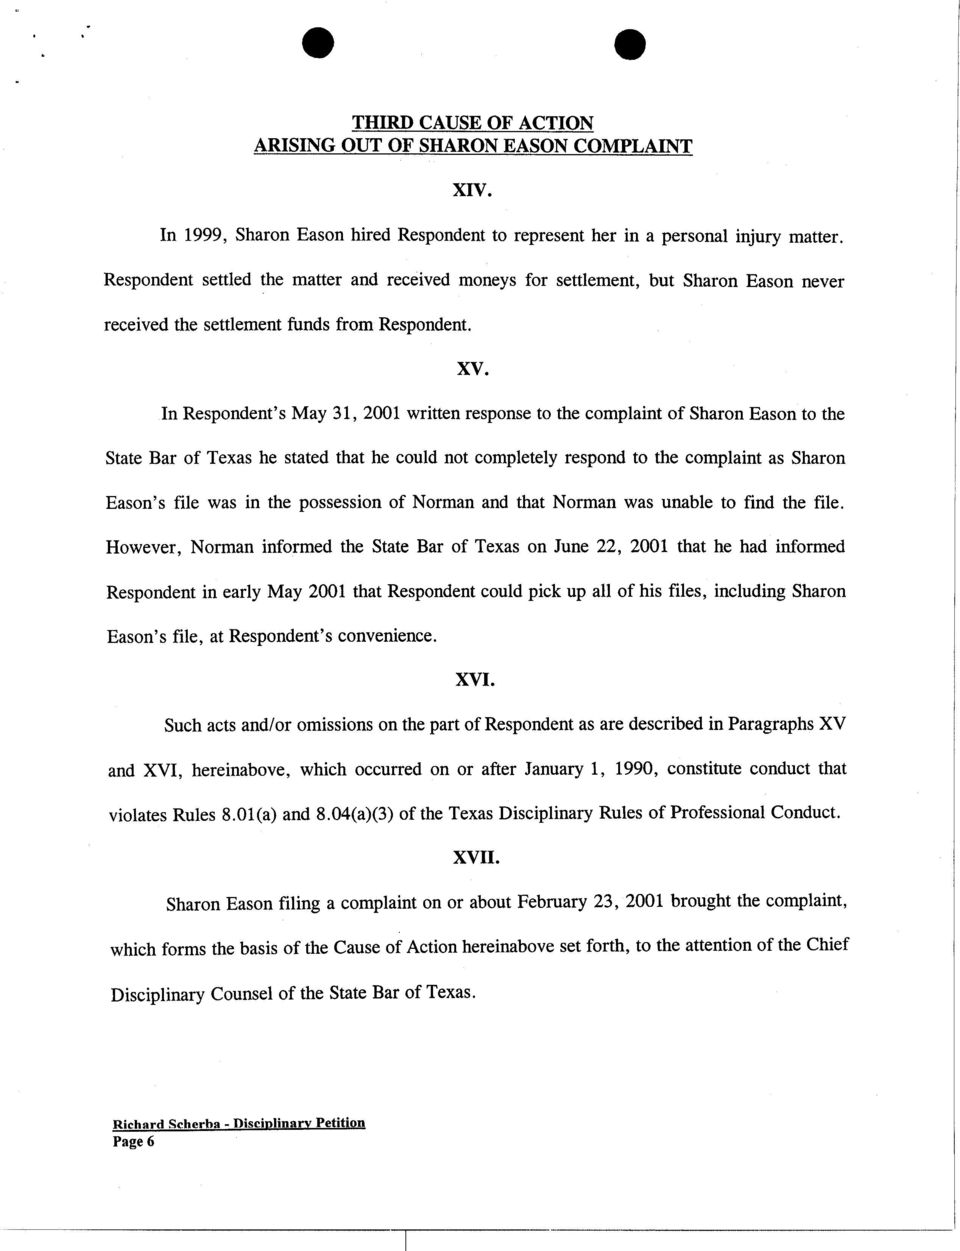 In Respondent's May 31,2001 written response to the complaint of Sharon Eason to the State Bar of Texas he stated that he could not completely respond to the complaint as Sharon Eason's file was in